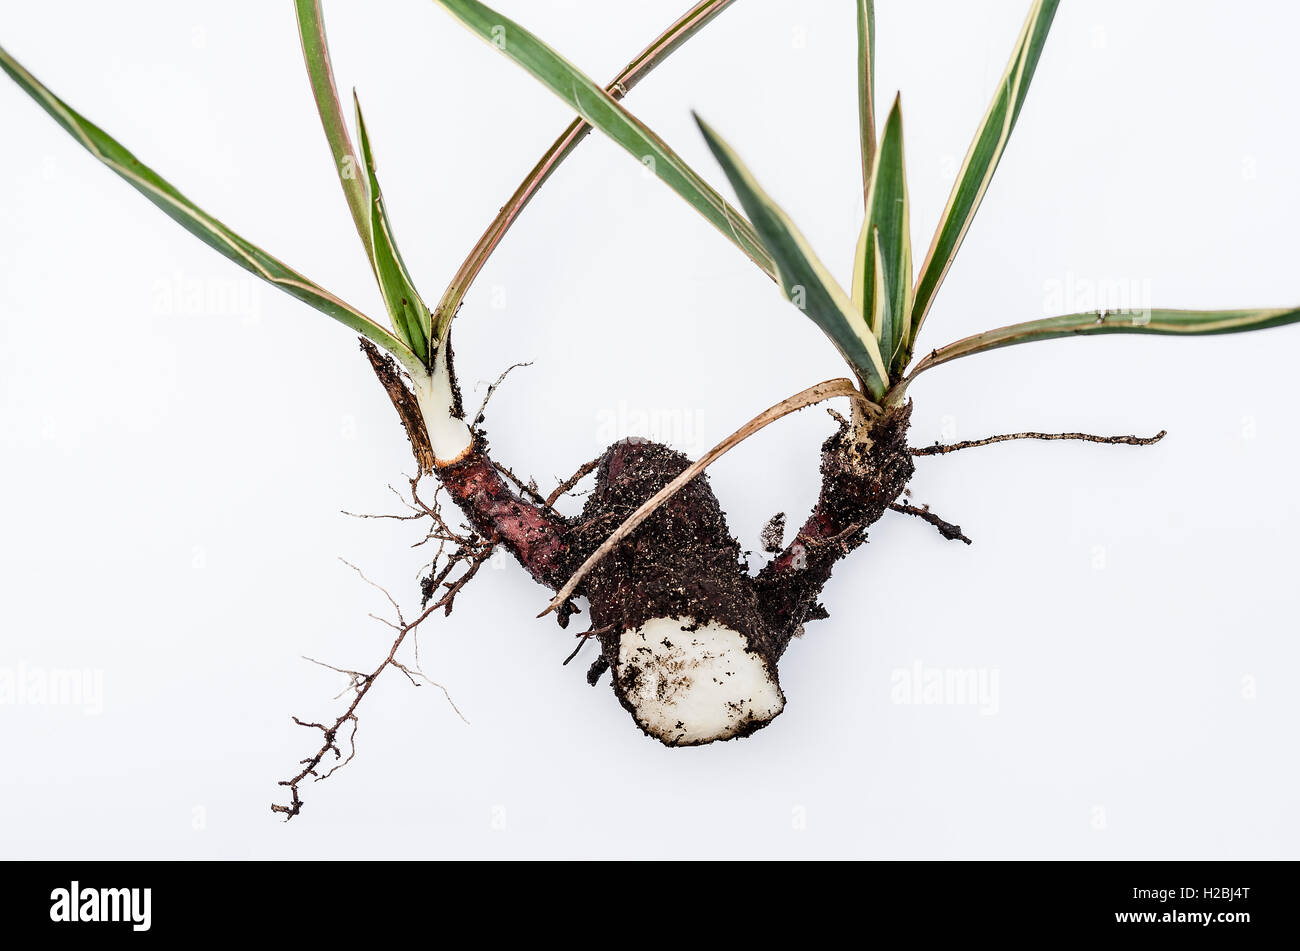 Section of a cordyline rhizome prepared for a trial propagation - Stock Image